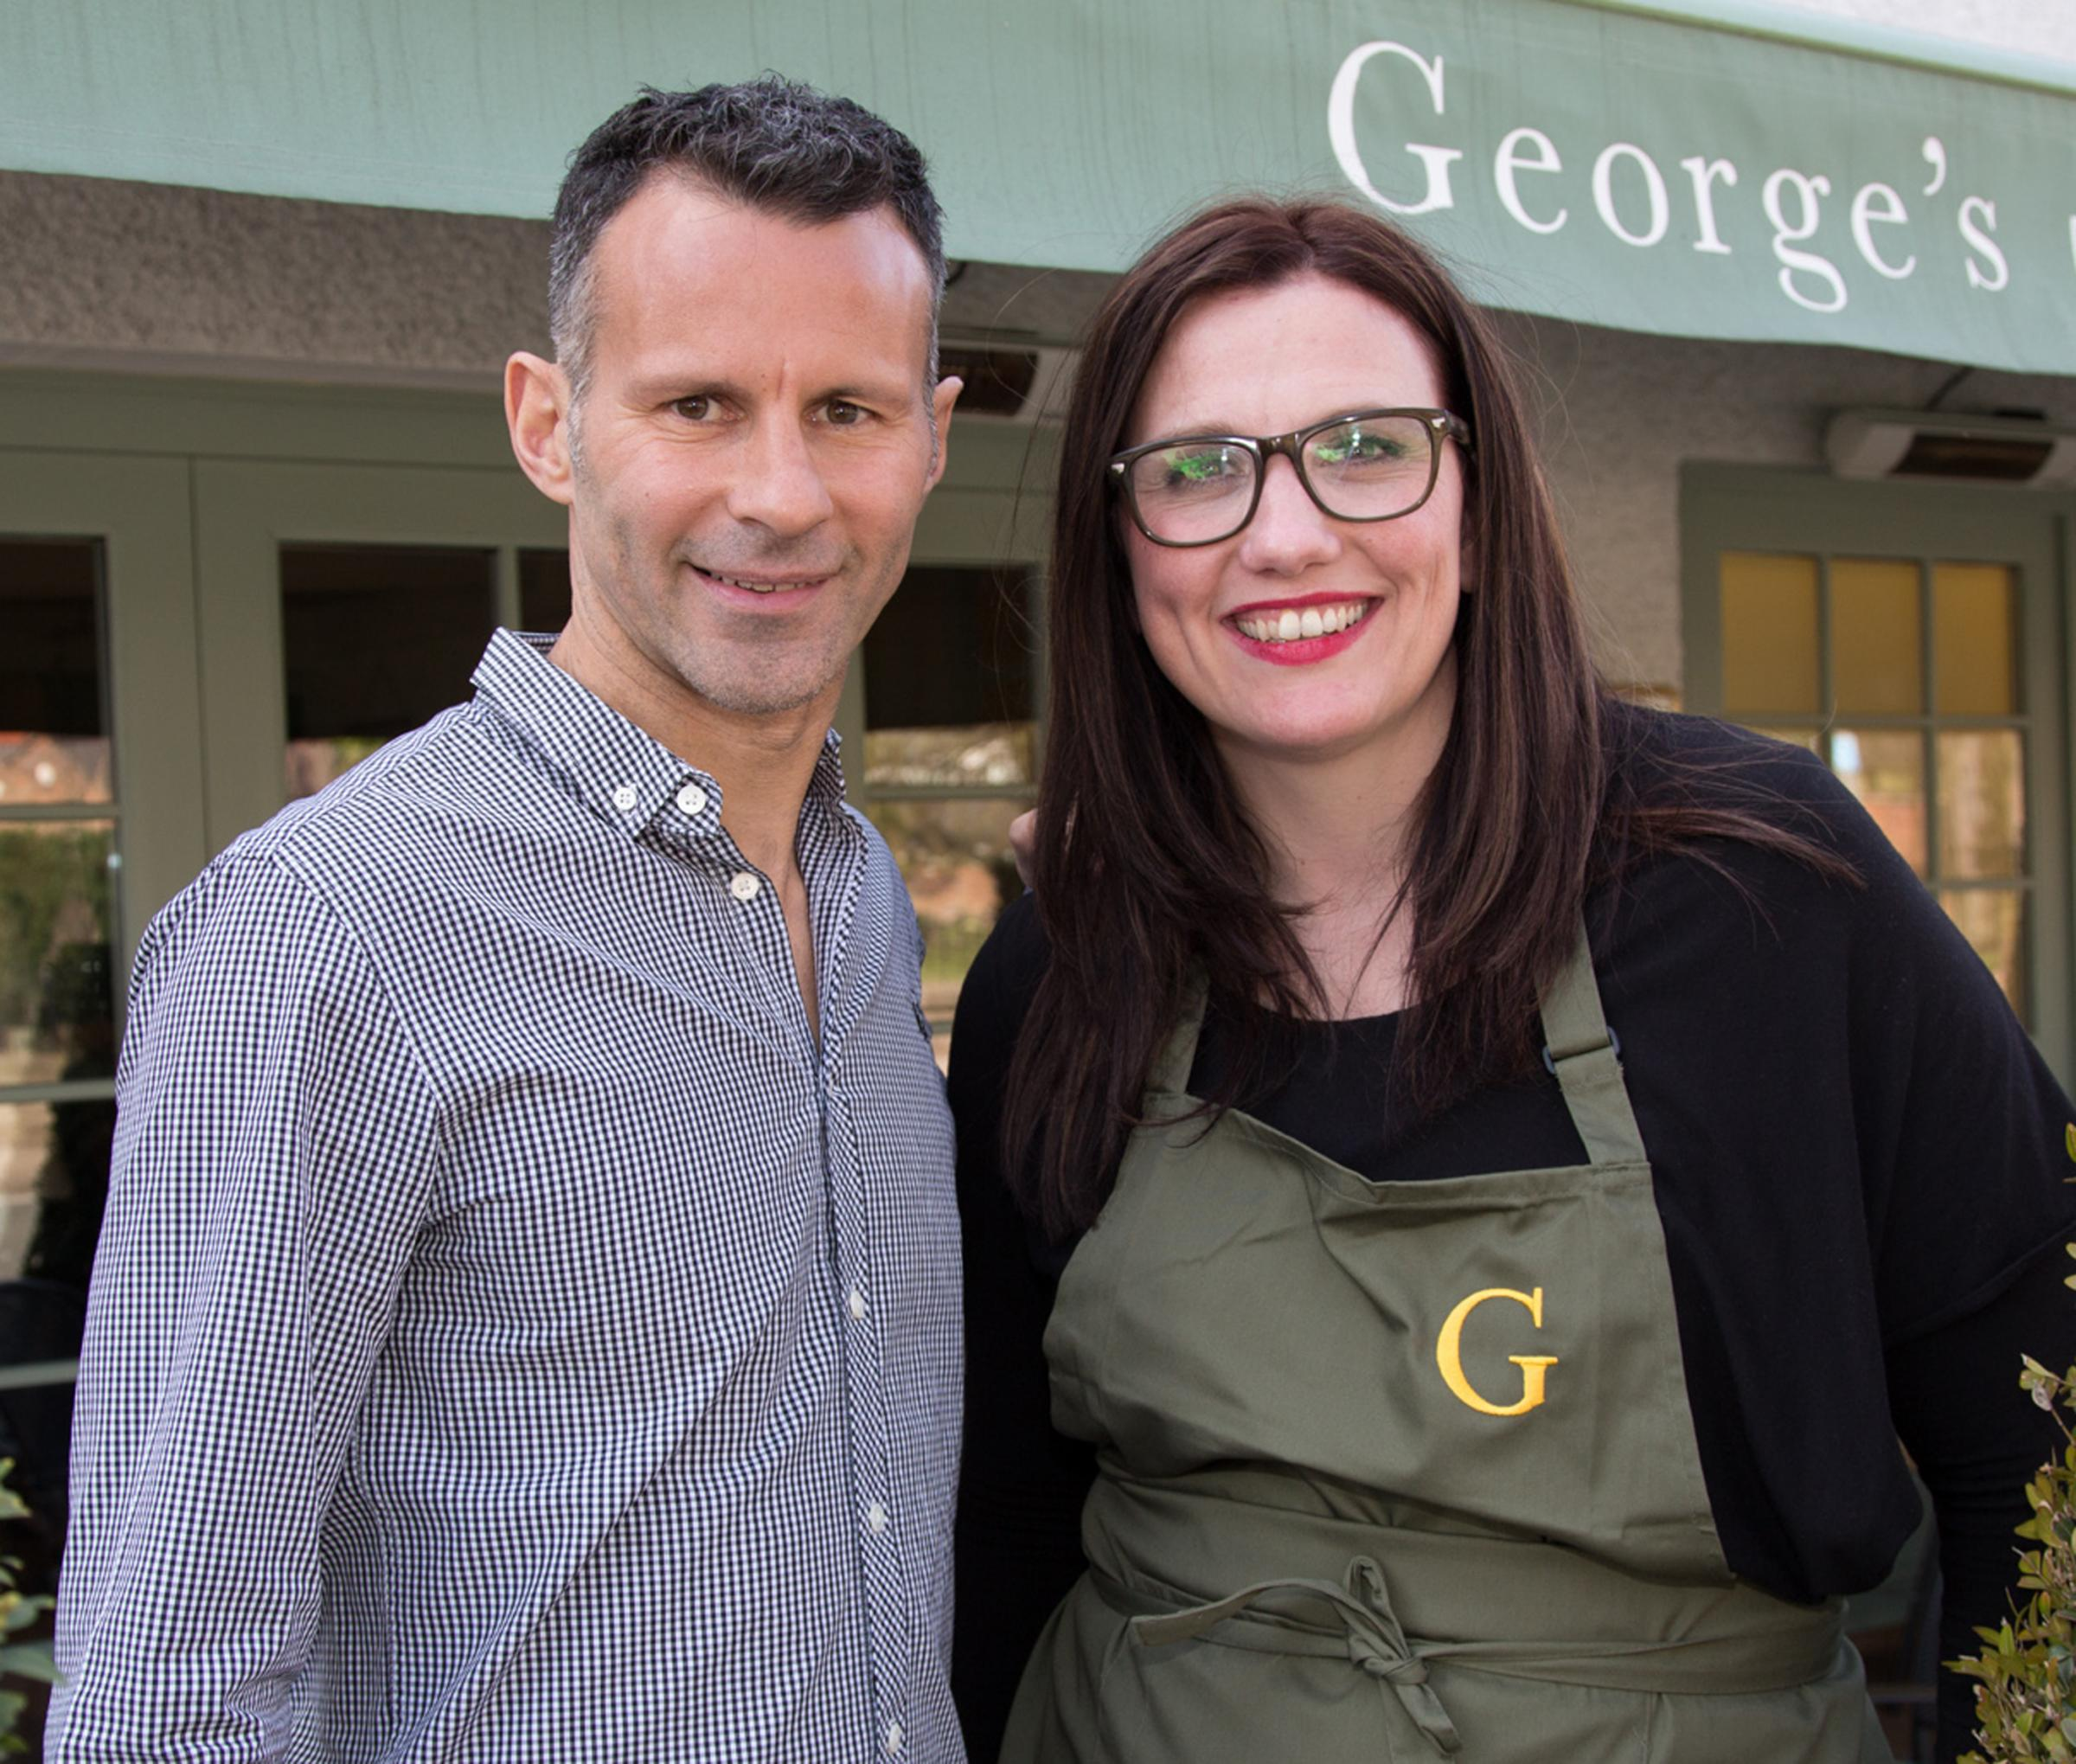 The Taste winner cooks for Manchester United star Ryan Giggs